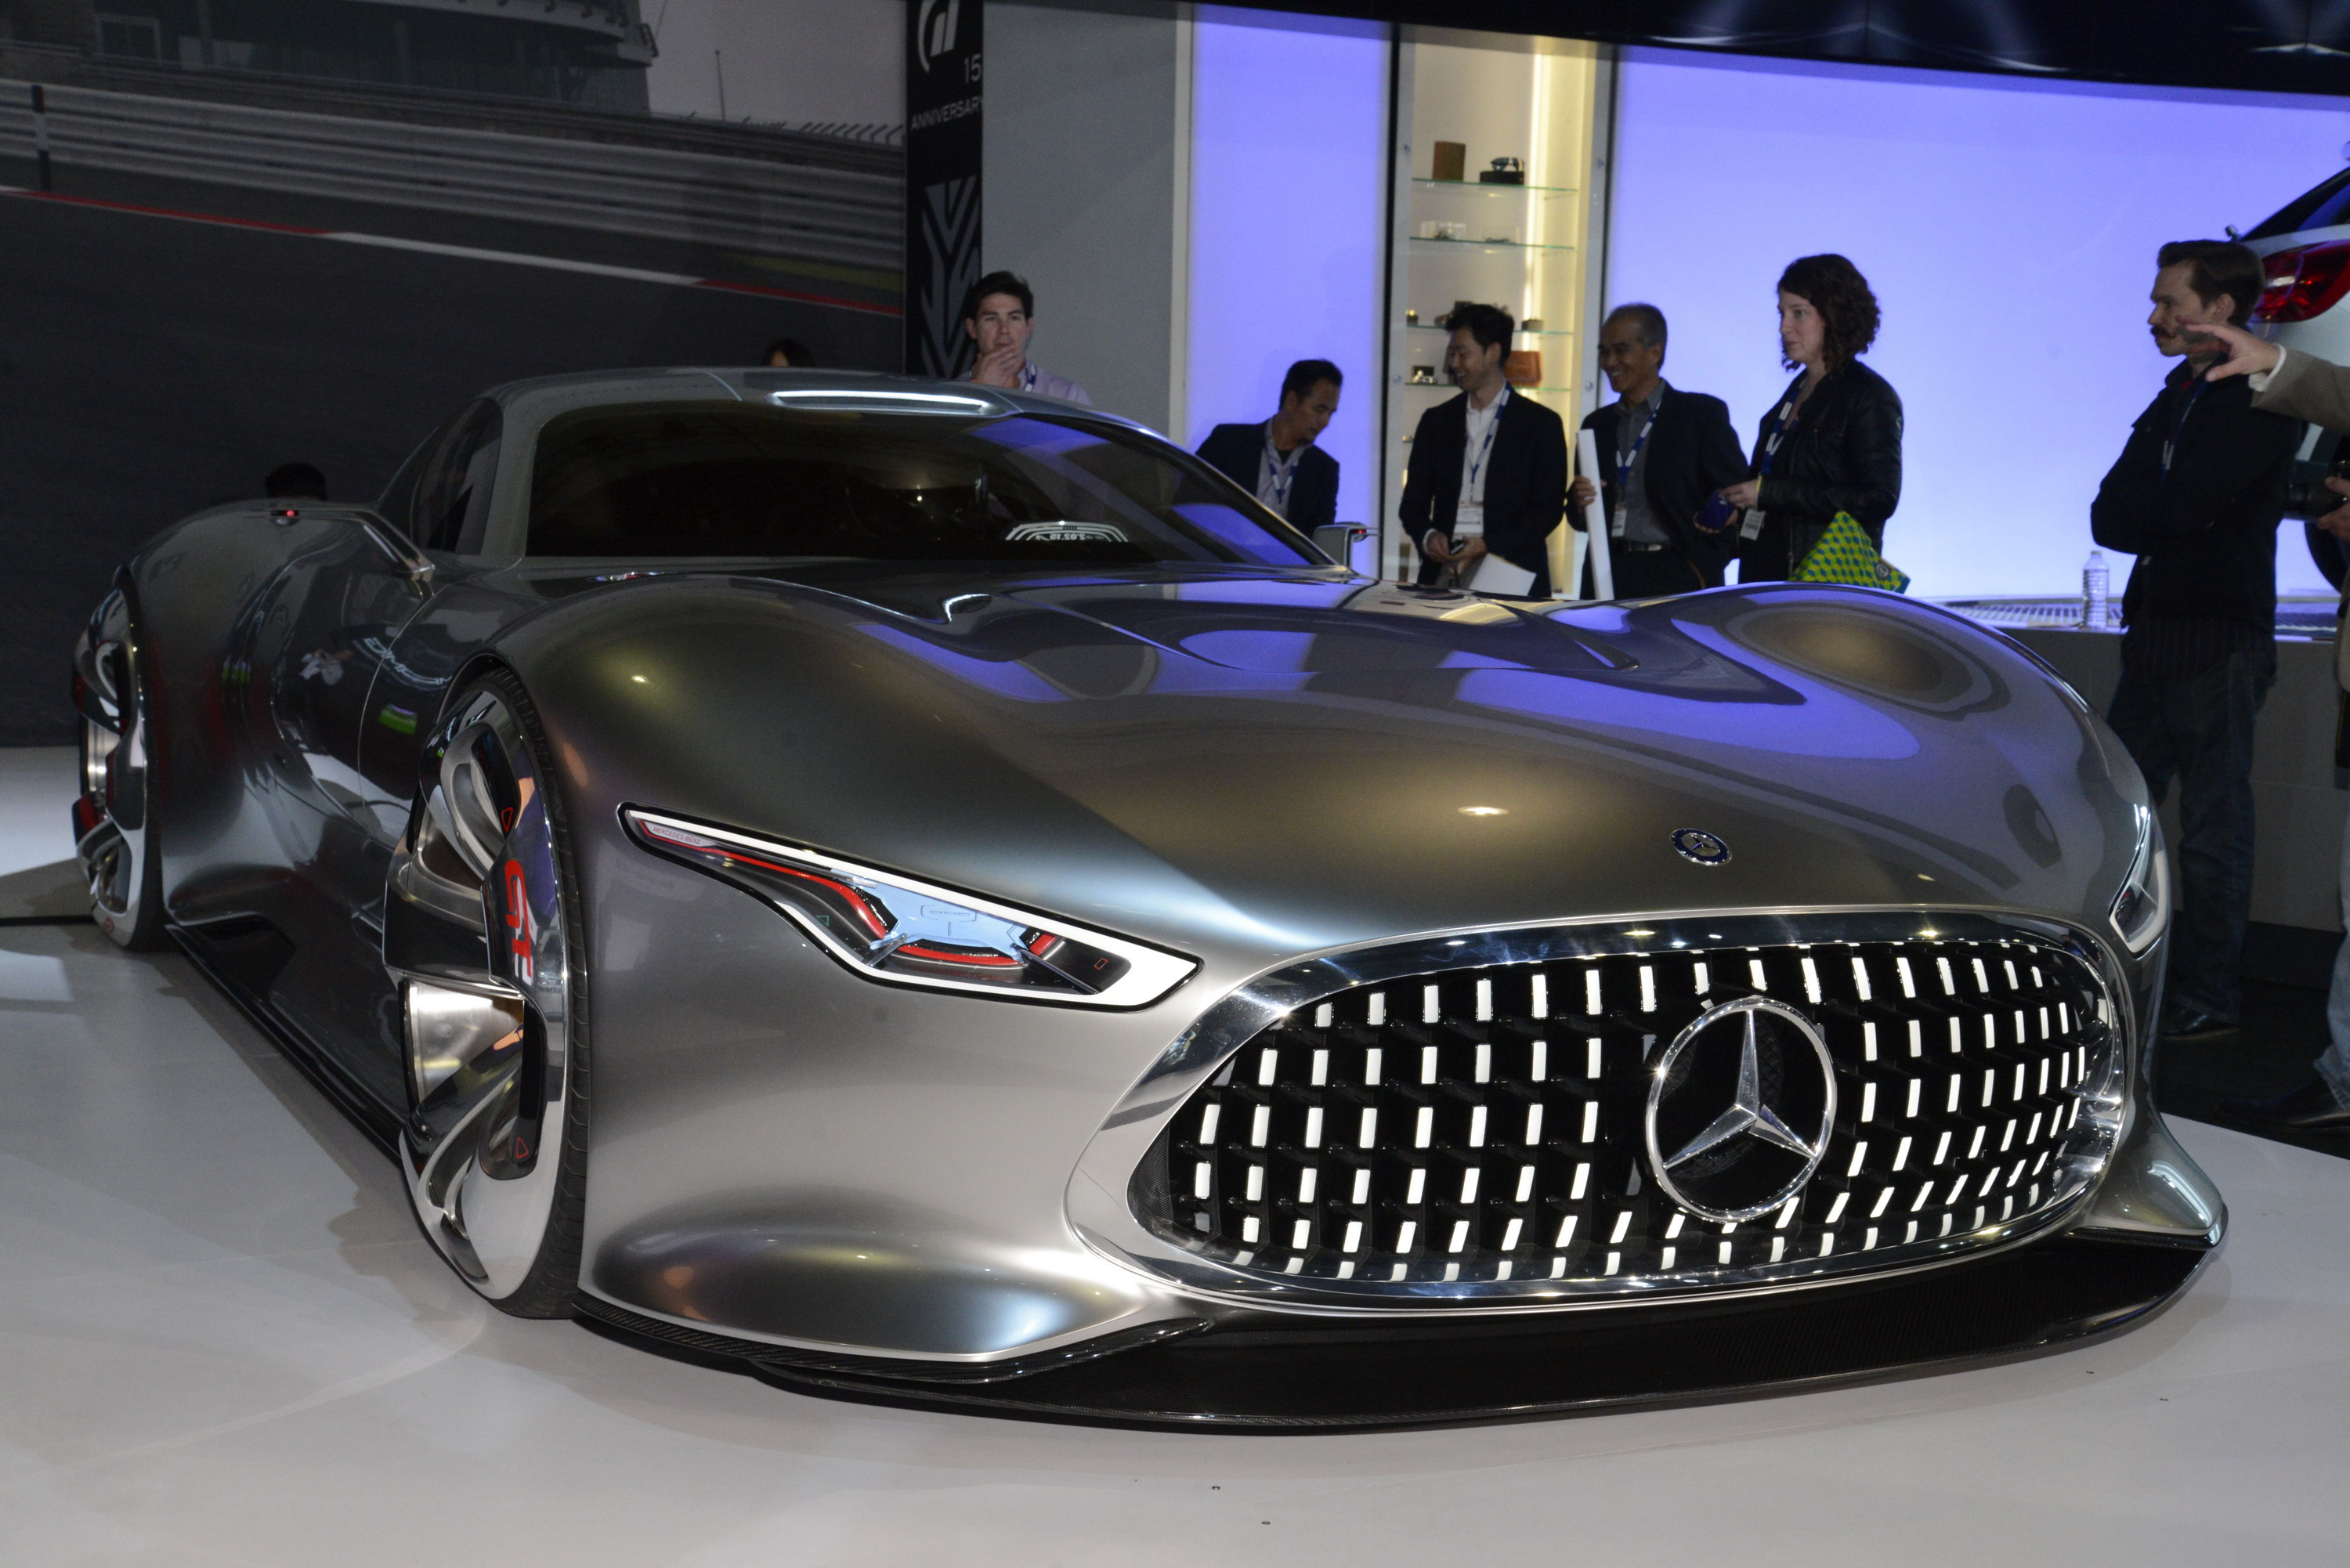 Great 2013 Mercedes Benz Vision Gran Turismo Concept | Top Speed. »